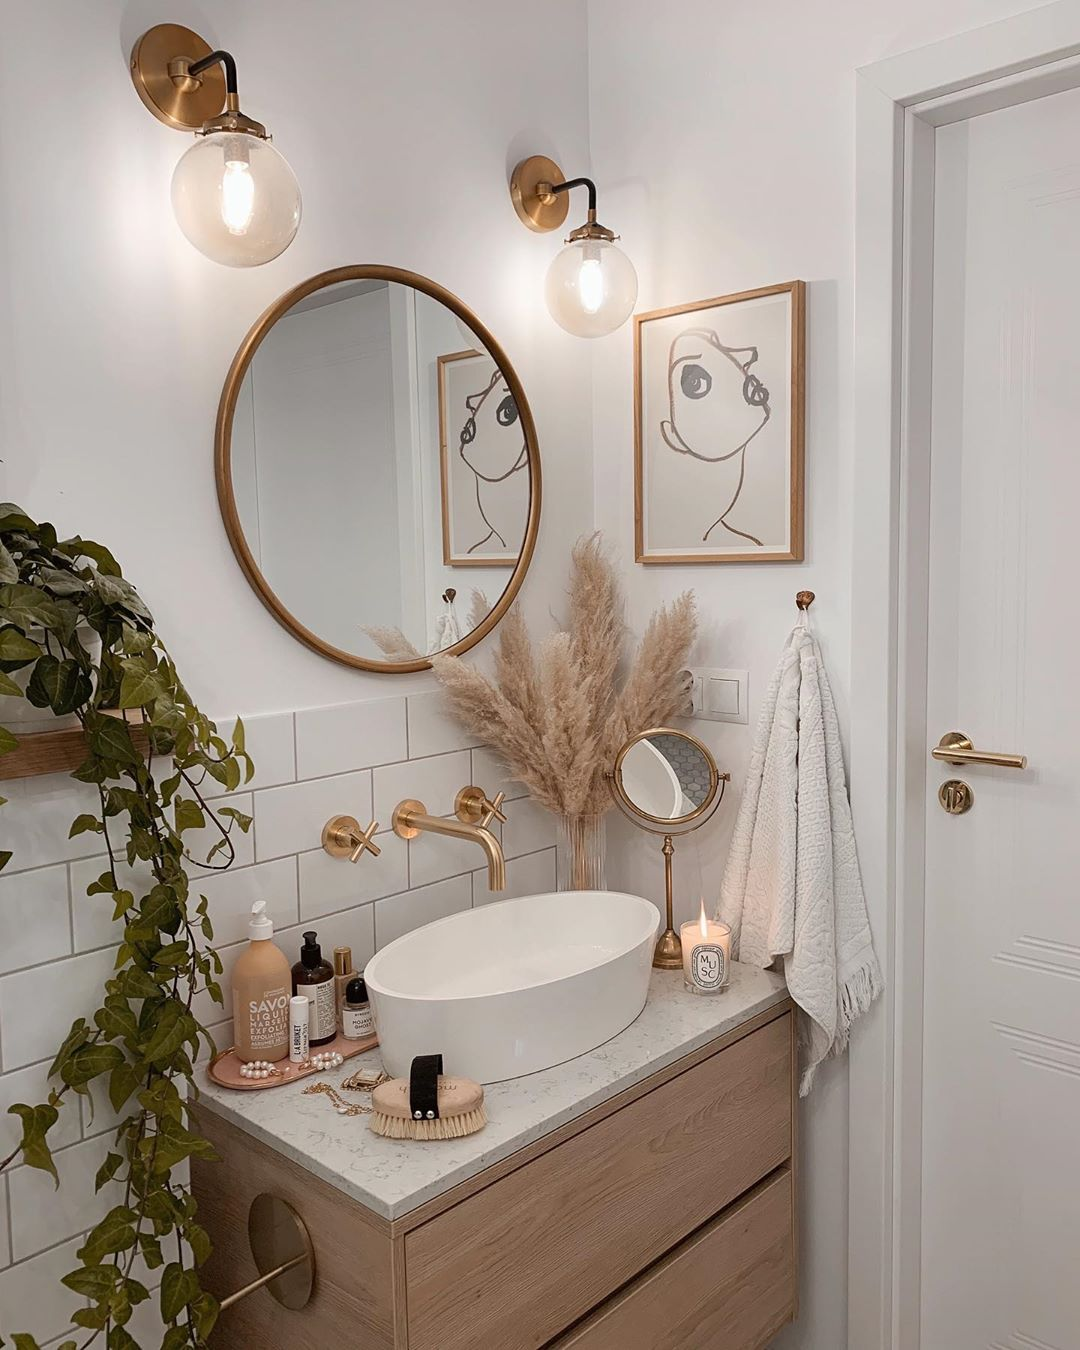 "𝐷𝑜𝑚𝑖𝑛𝑖𝑘𝑎 𝐵𝑟𝑢𝑑𝑛𝑦 📷 on Instagram: ""𝑓𝑎𝑣 𝑐𝑜𝑟𝑛𝑒𝑟 💫  bathroom #bathroomdesign #bathroominspiration #bathroomdecor #bathrooms #bathroomstyling #bathroomgoals #bathroomideas…"""